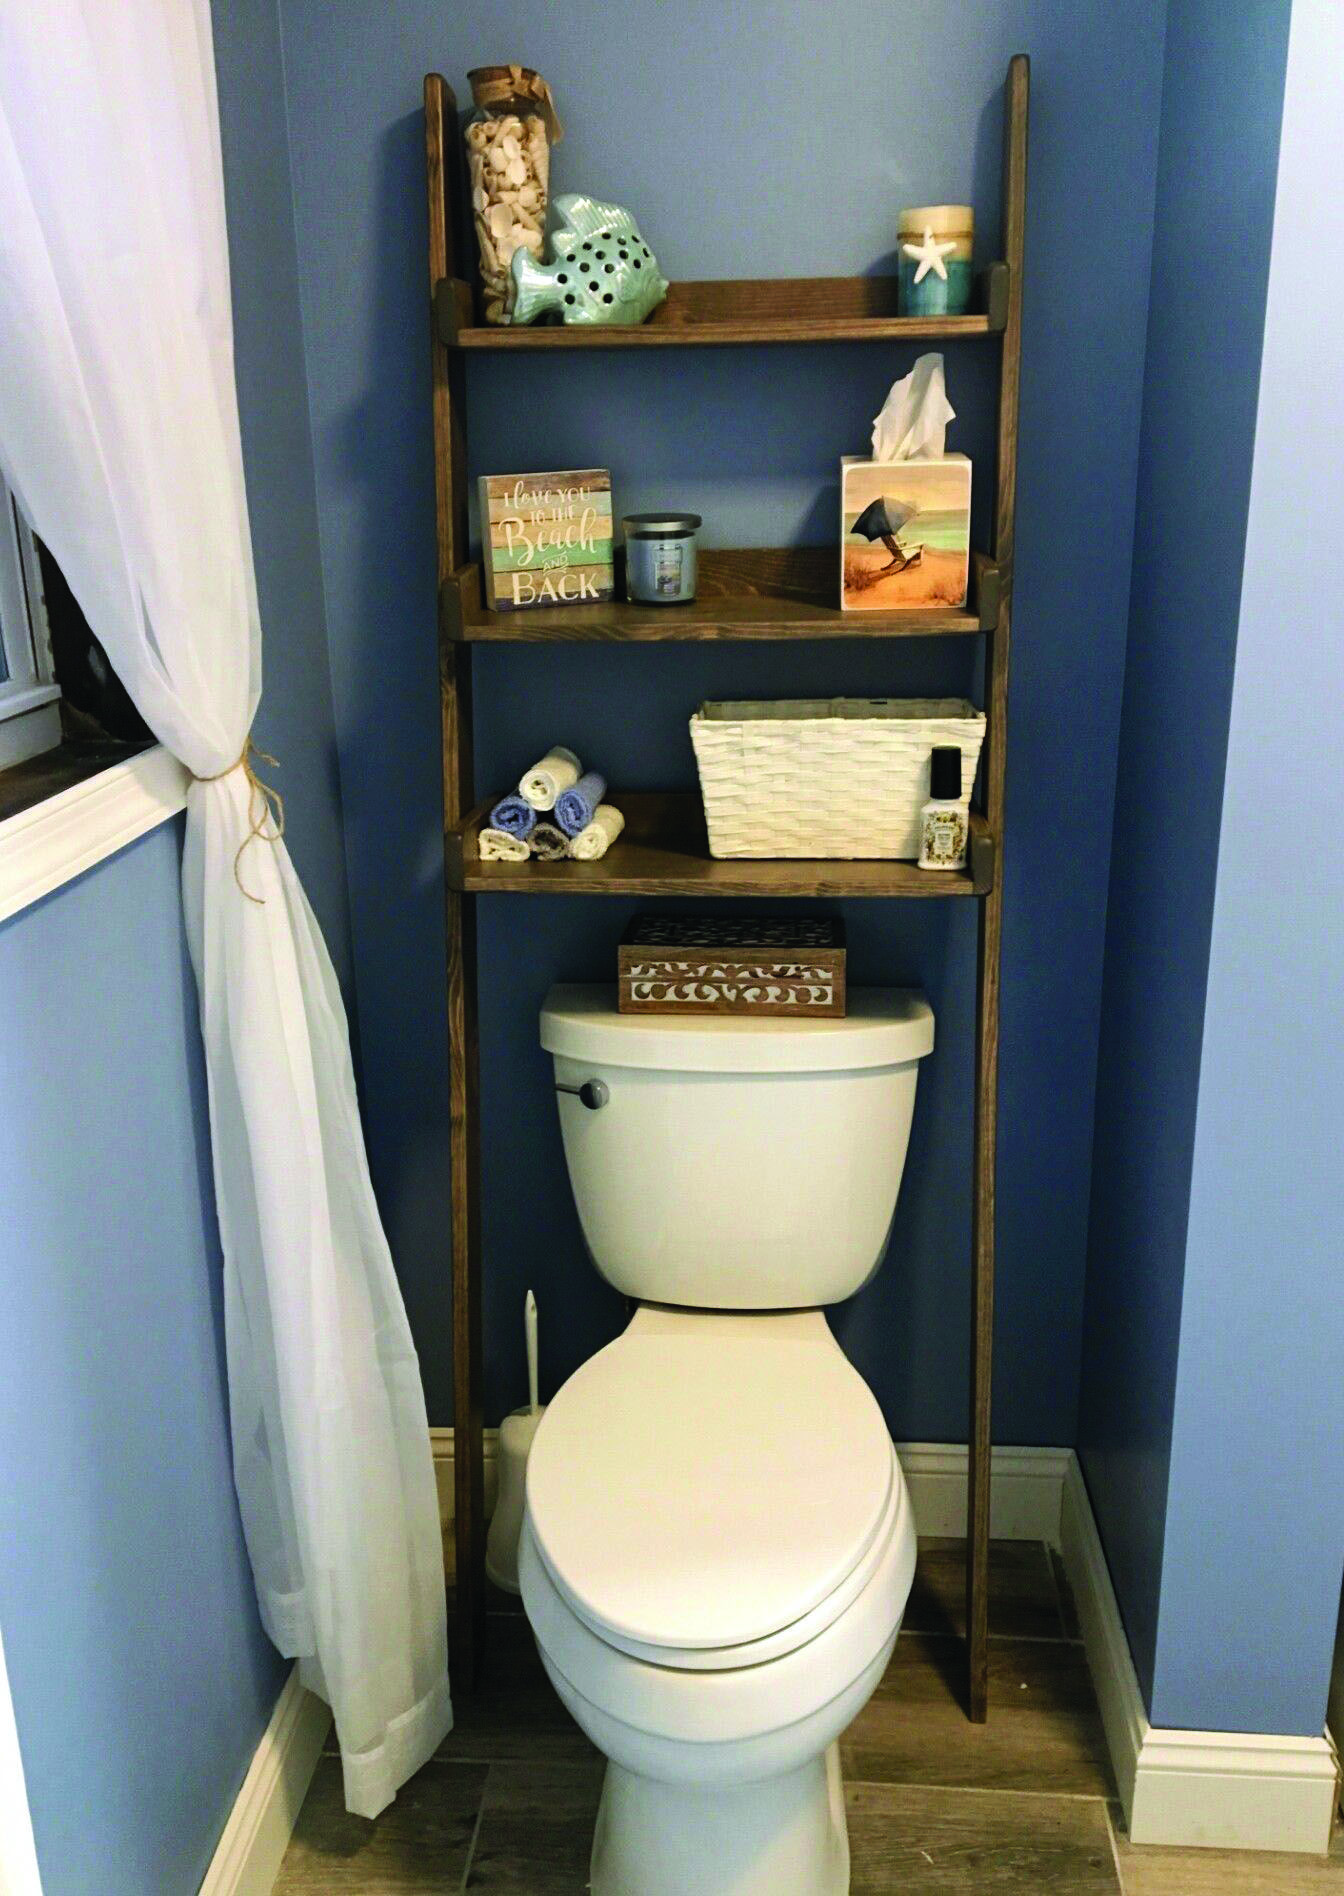 15 Brilliant Over The Toilet Storage Ideas That Make The Most Of Your Space Toilet Storage Bathroom Space Saver Over Toilet Storage